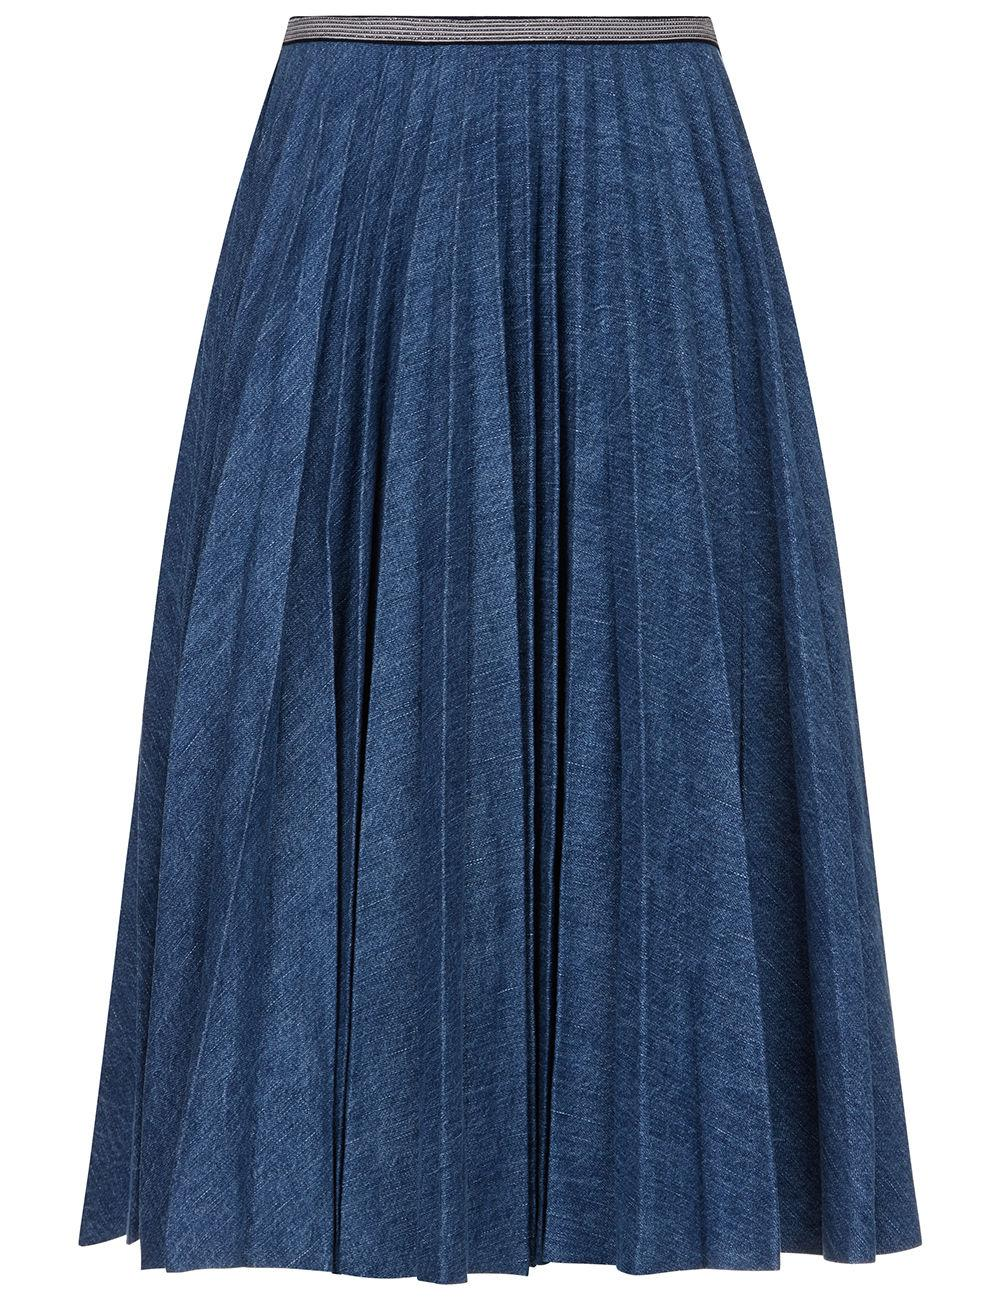 leur logette denim pleated midi skirt in blue lyst